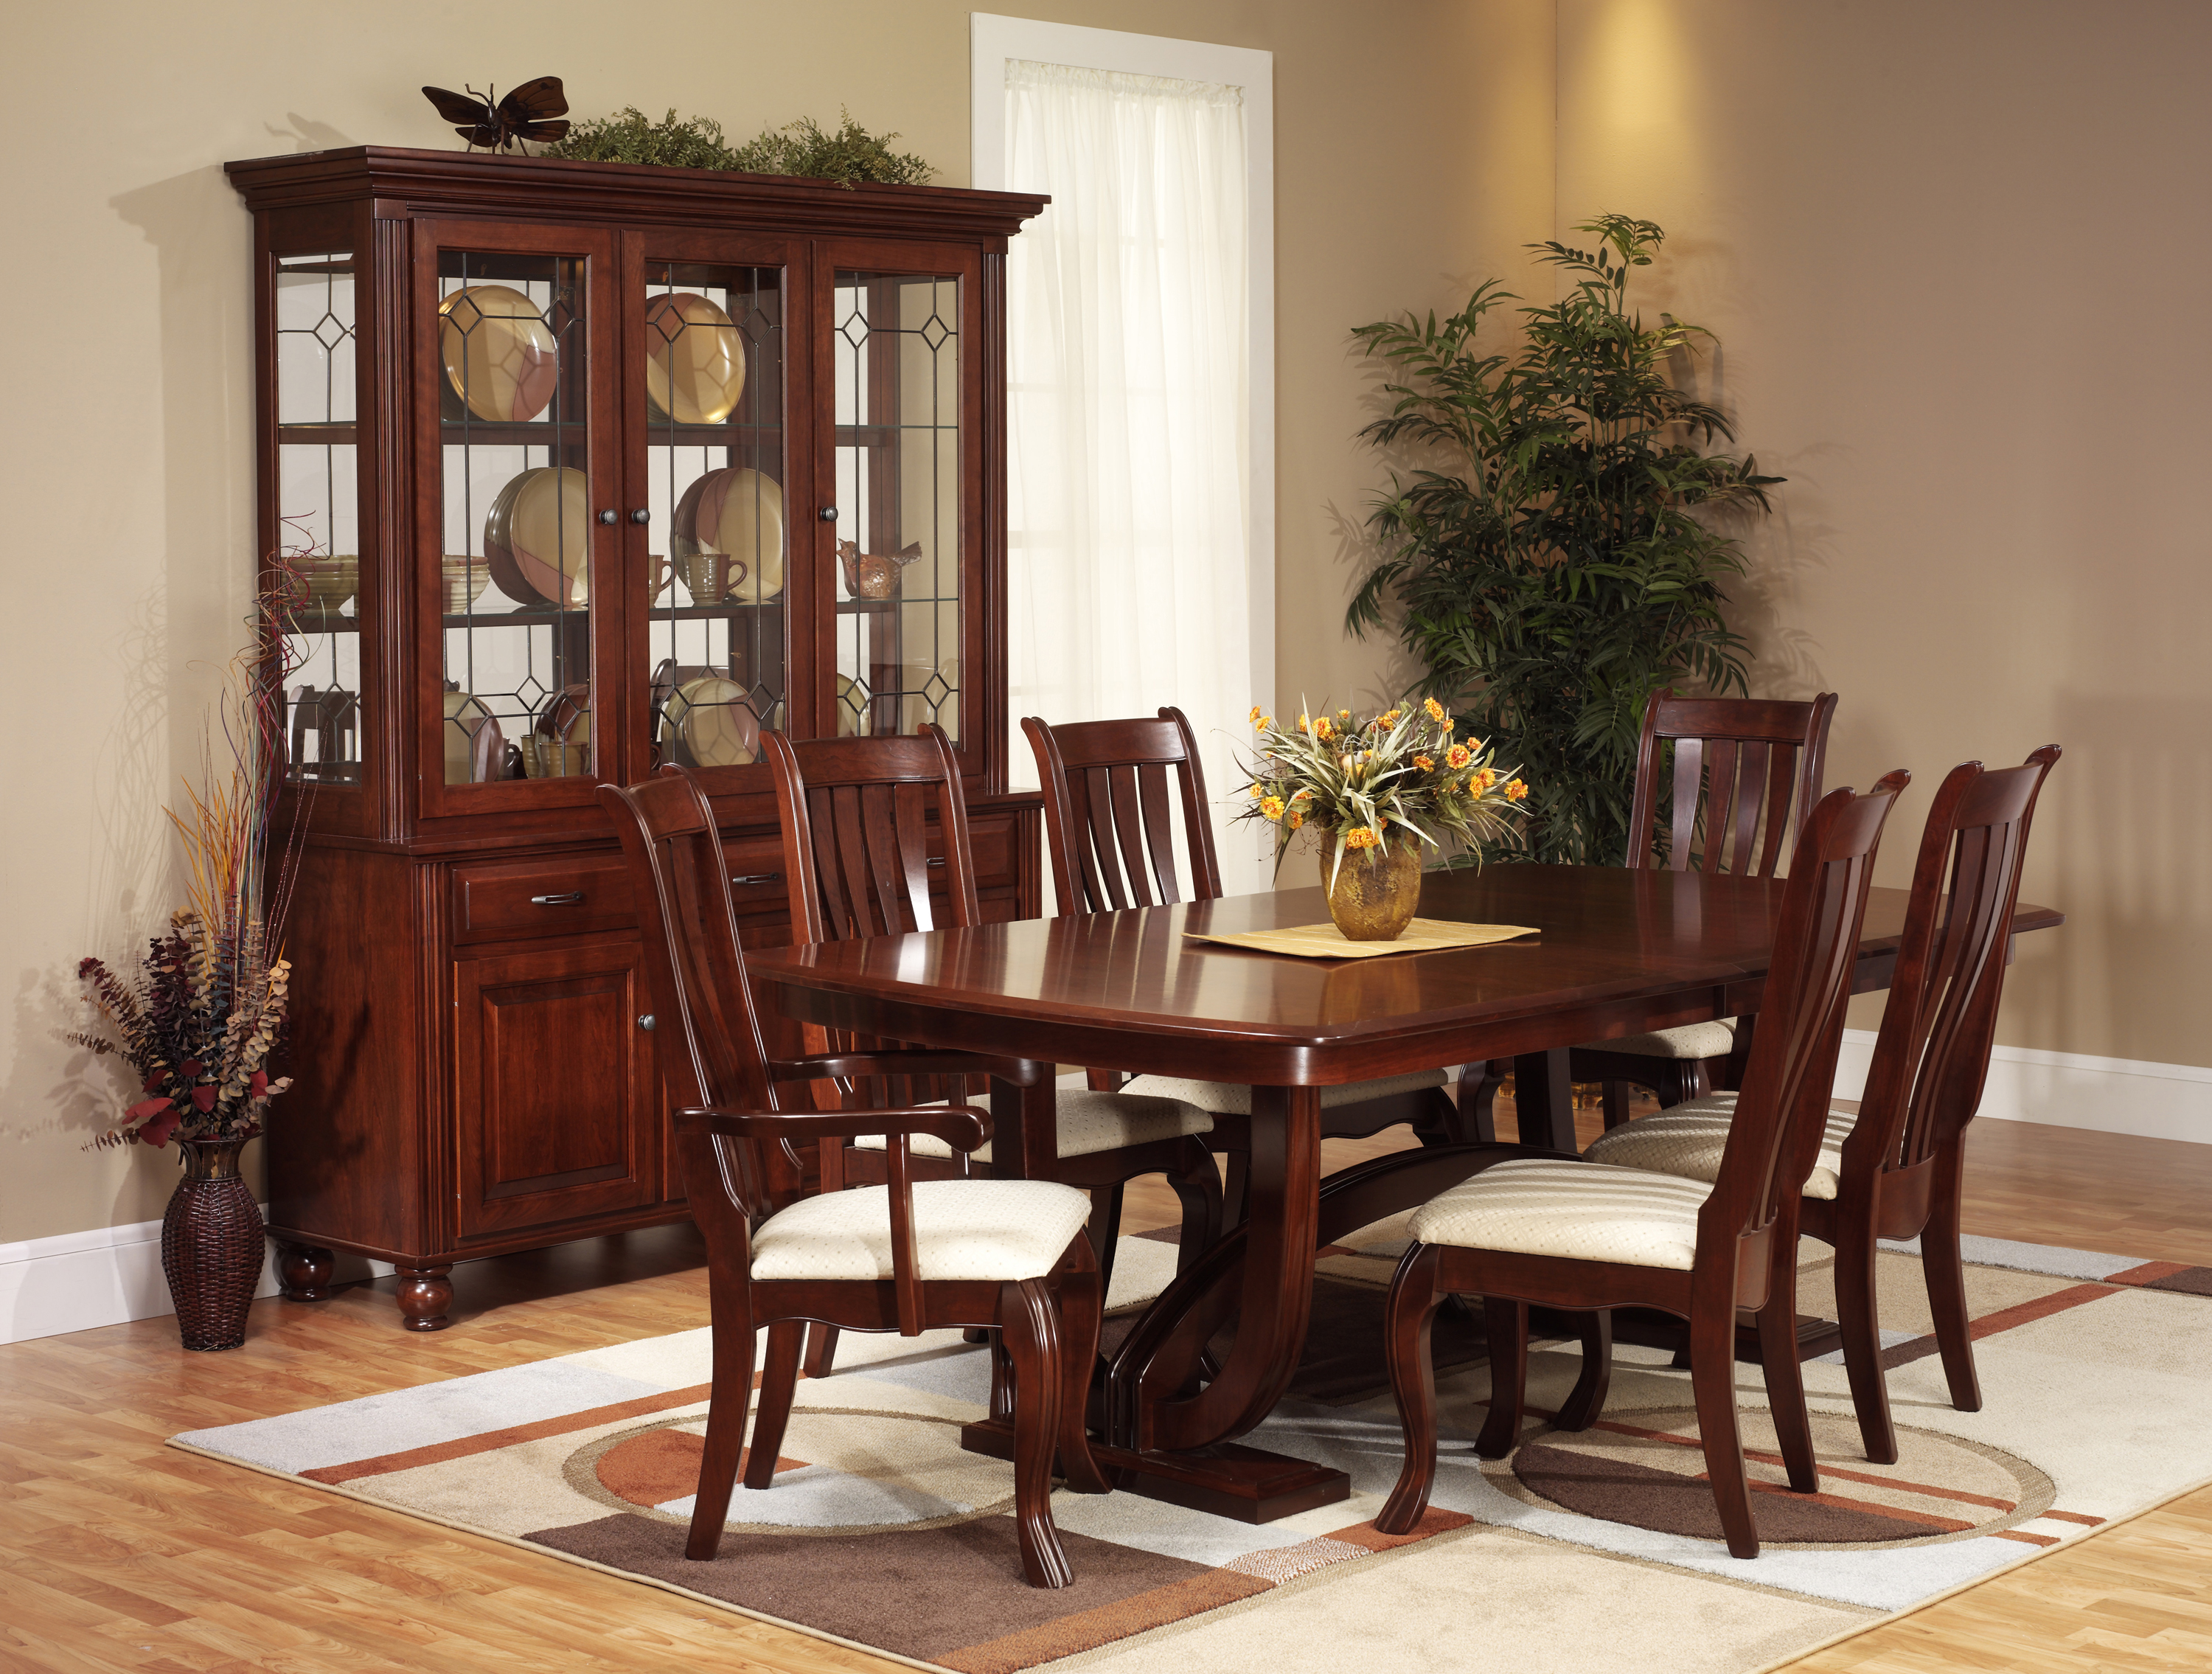 The amish gallery dining room for Dining room suites images